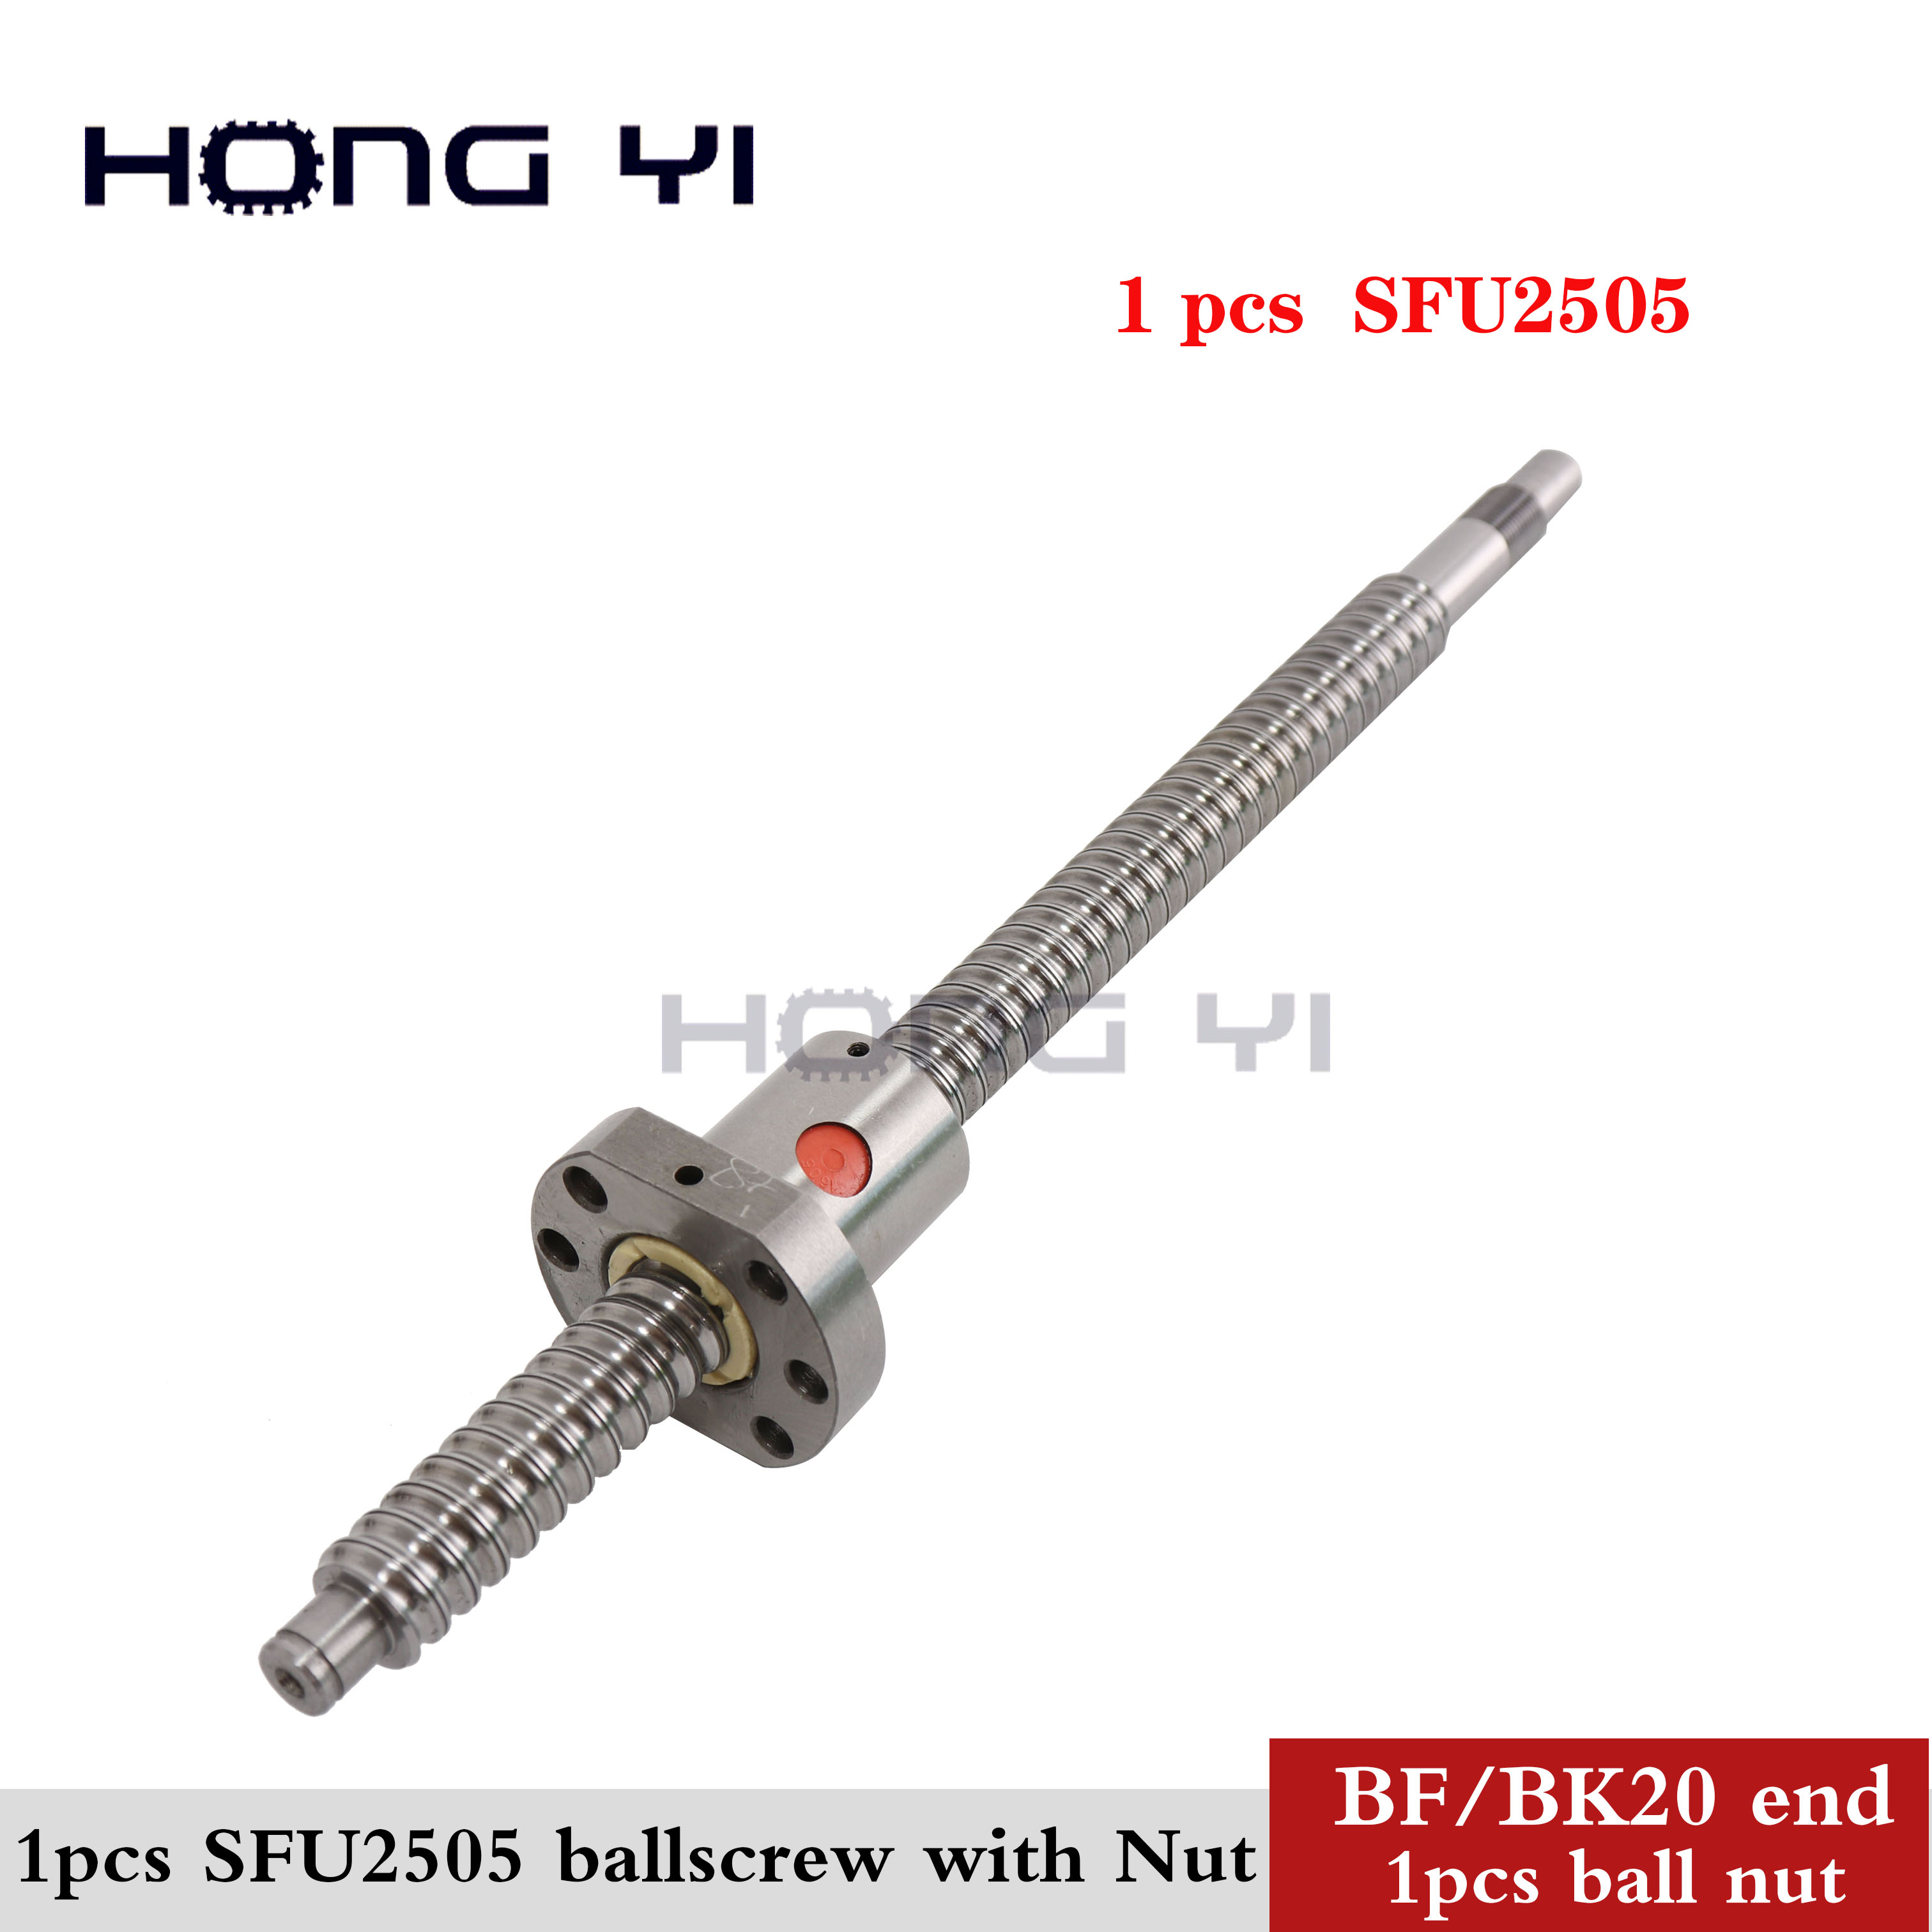 2019 BallScrew SFU2505 300 800 850 900 1000 mm for cnc Parts ball screw C7 with 2505 flange single ball nut <font><b>BK</b></font>/<font><b>BF20</b></font> end machined image